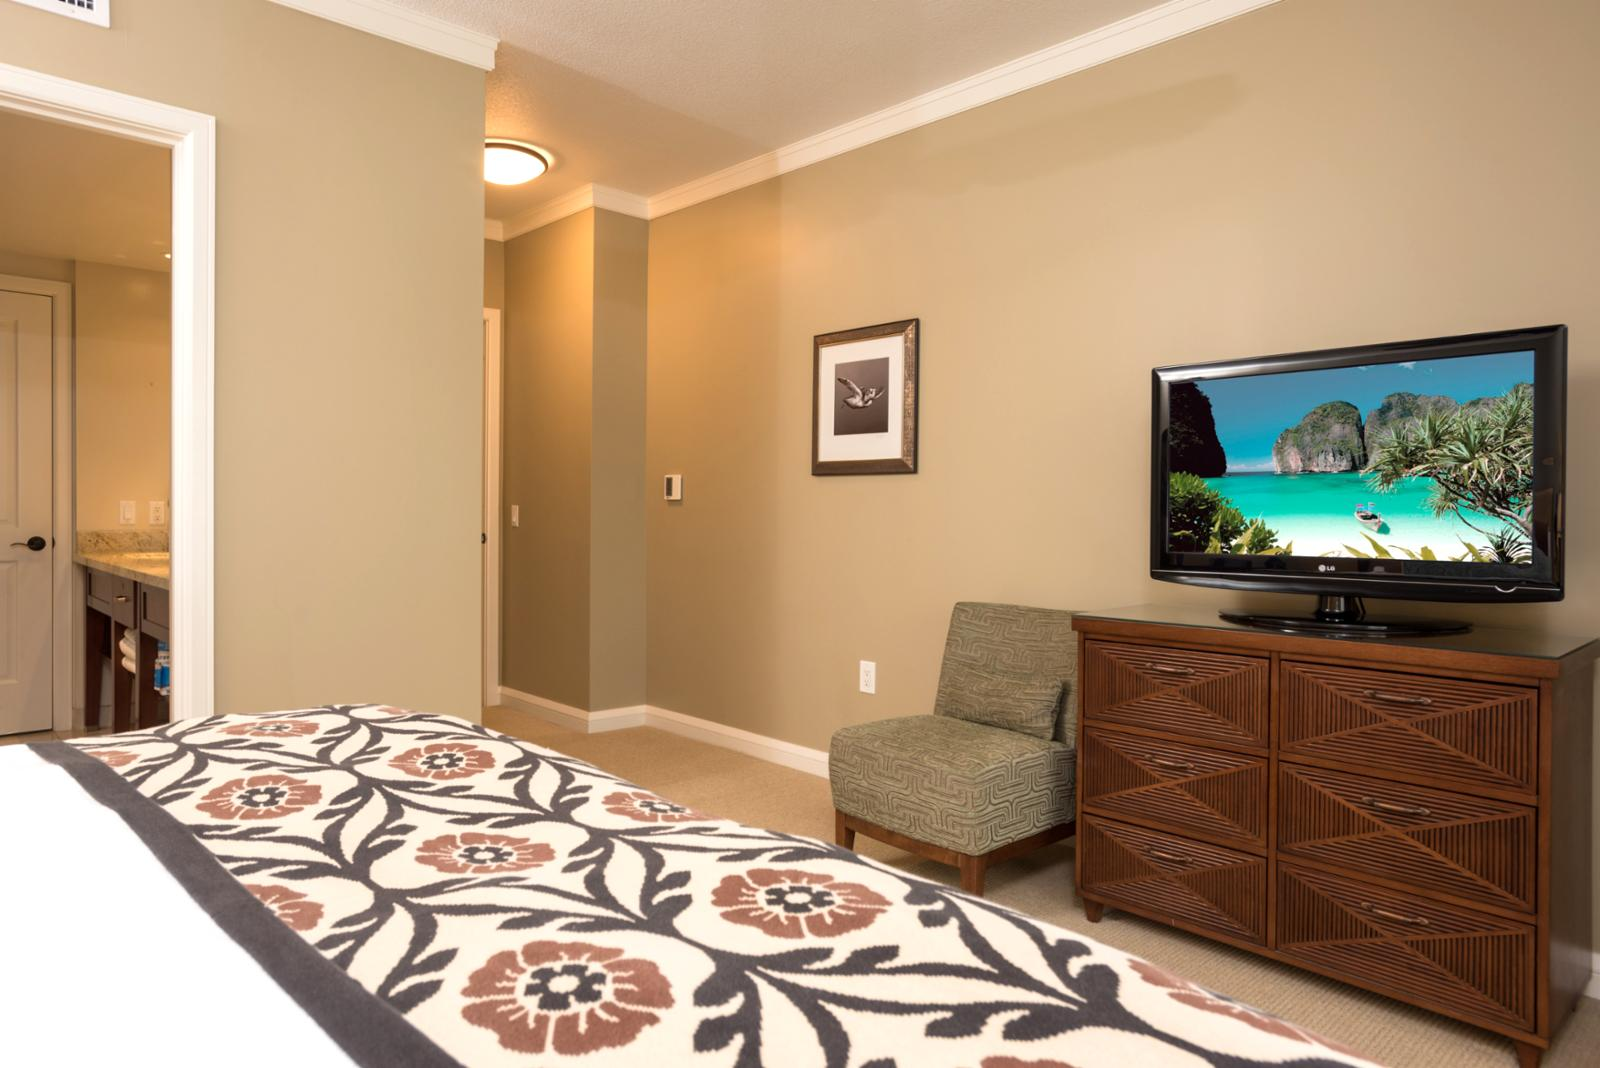 Master bedroom with television and main entry